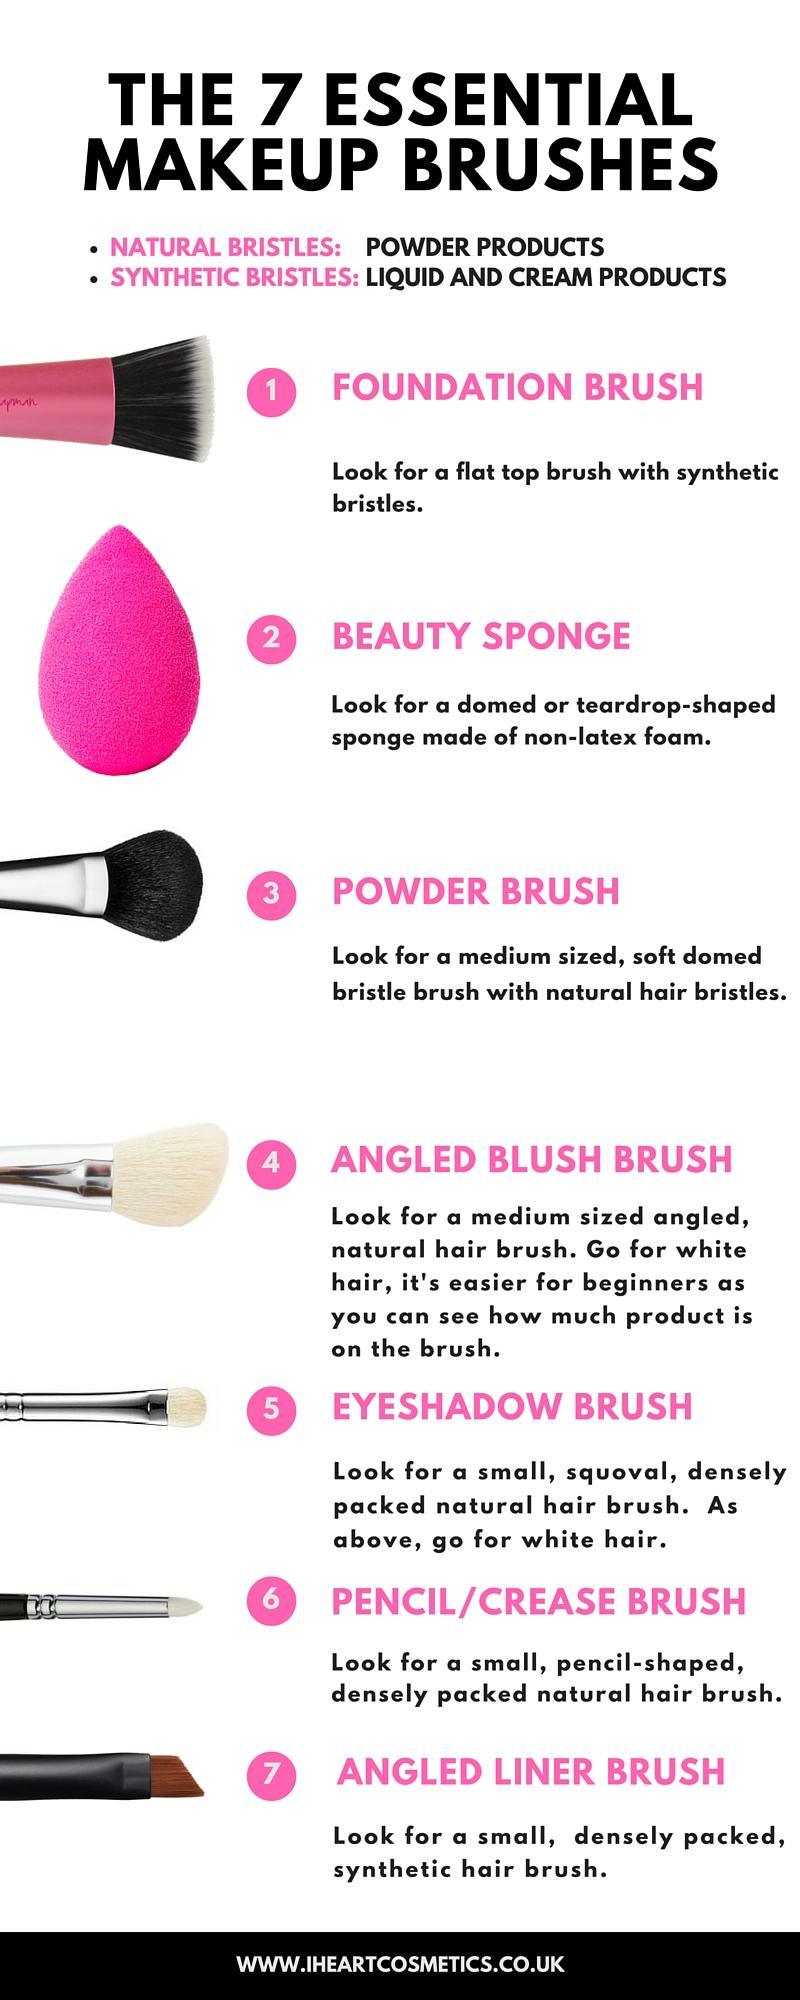 The 7 Essential Makeup Brushes